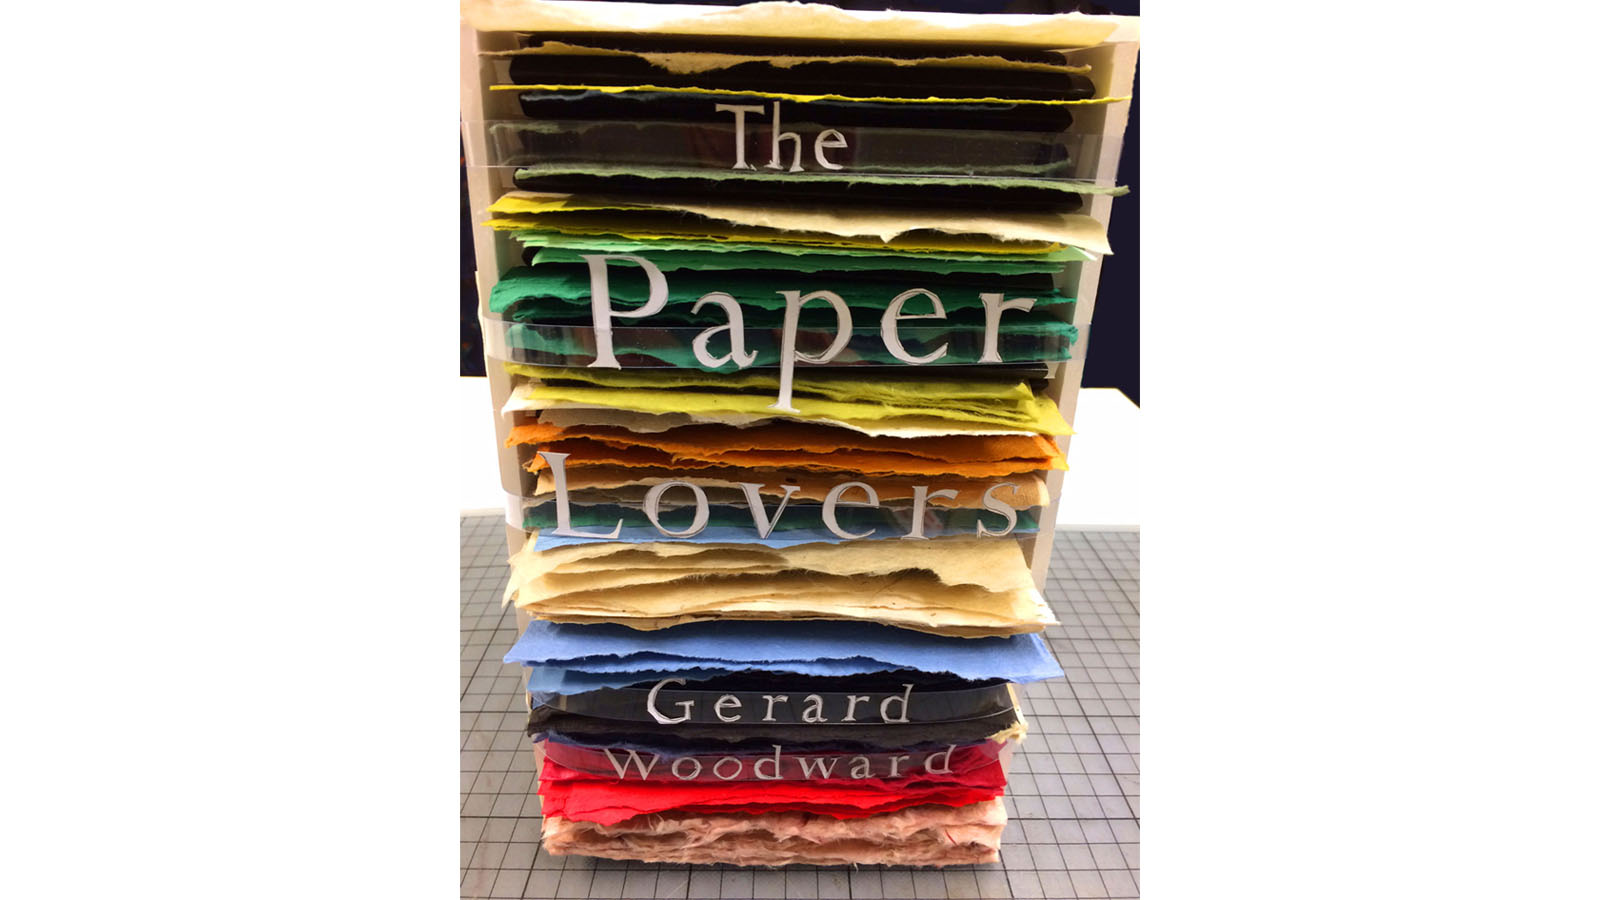 Gerard Woodward The Paper Lovers cover design 4